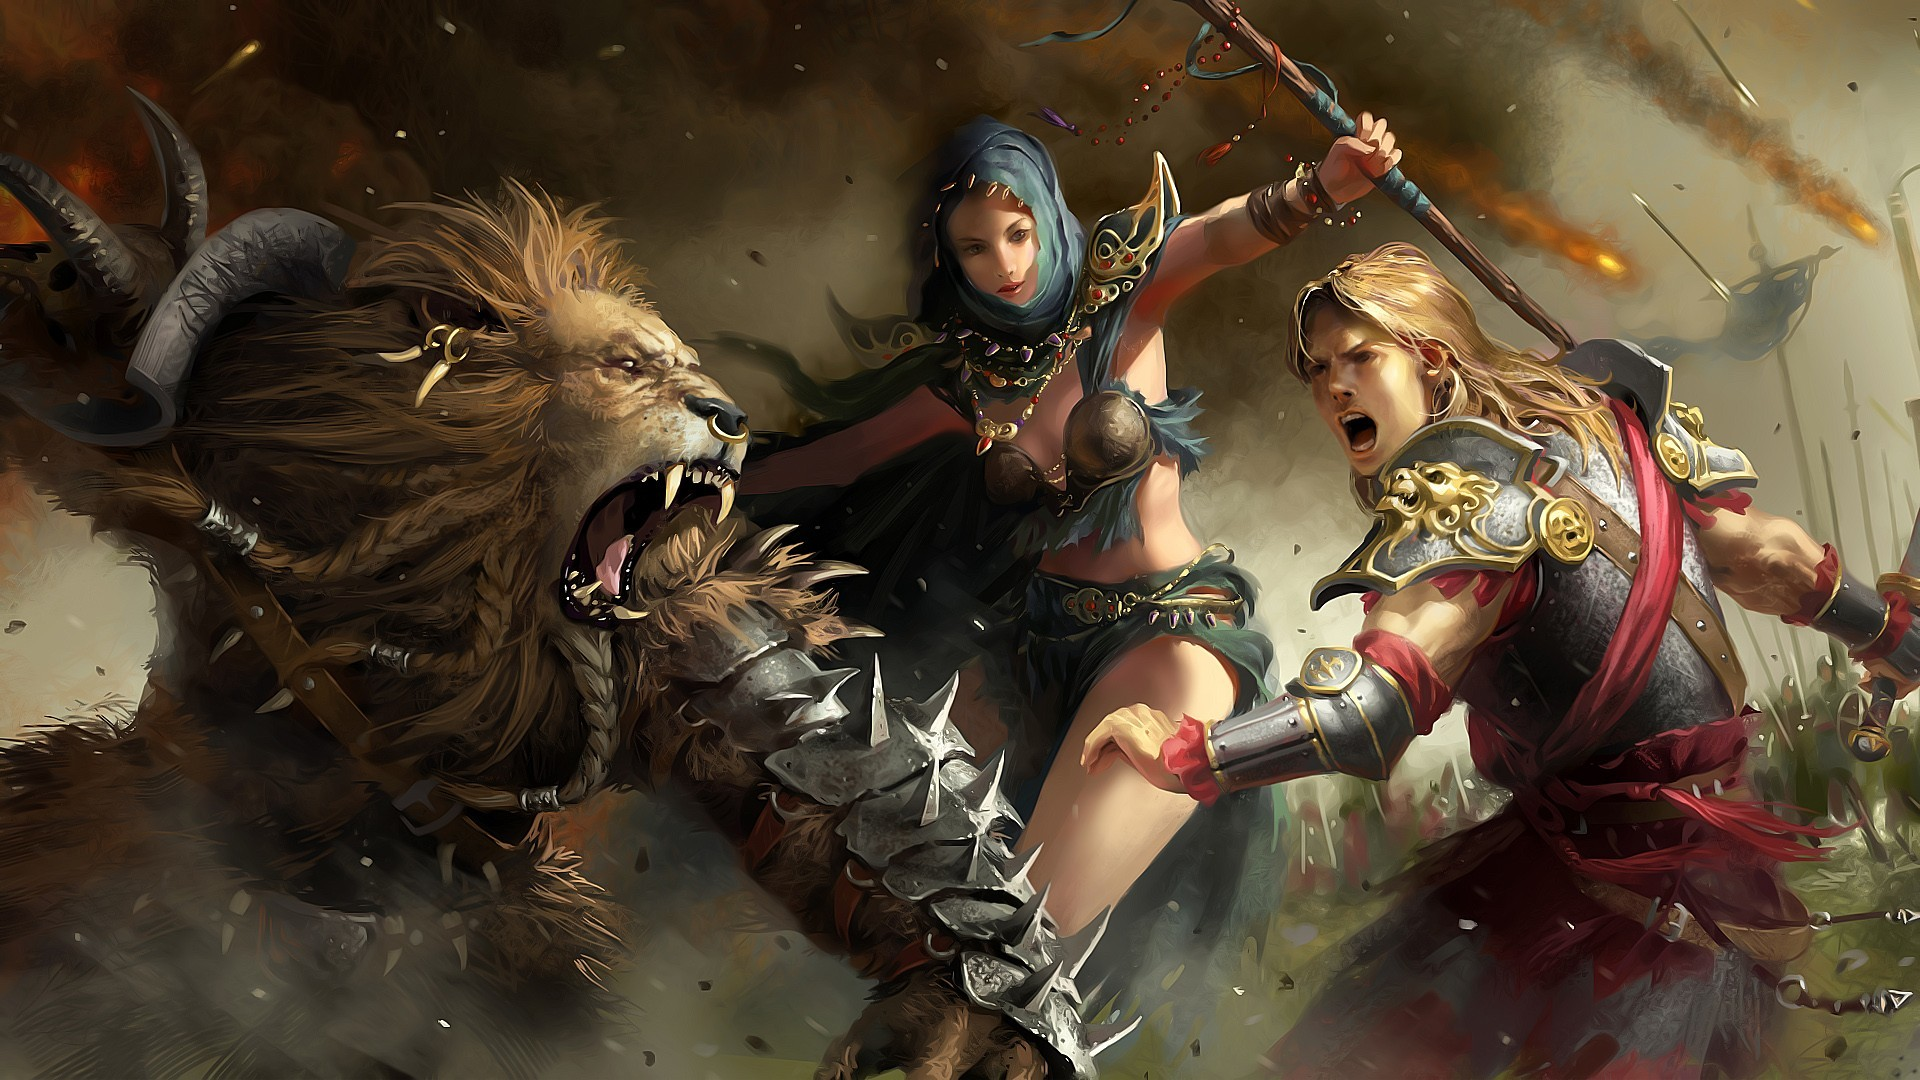 fantasy video games armor HD Wallpaper